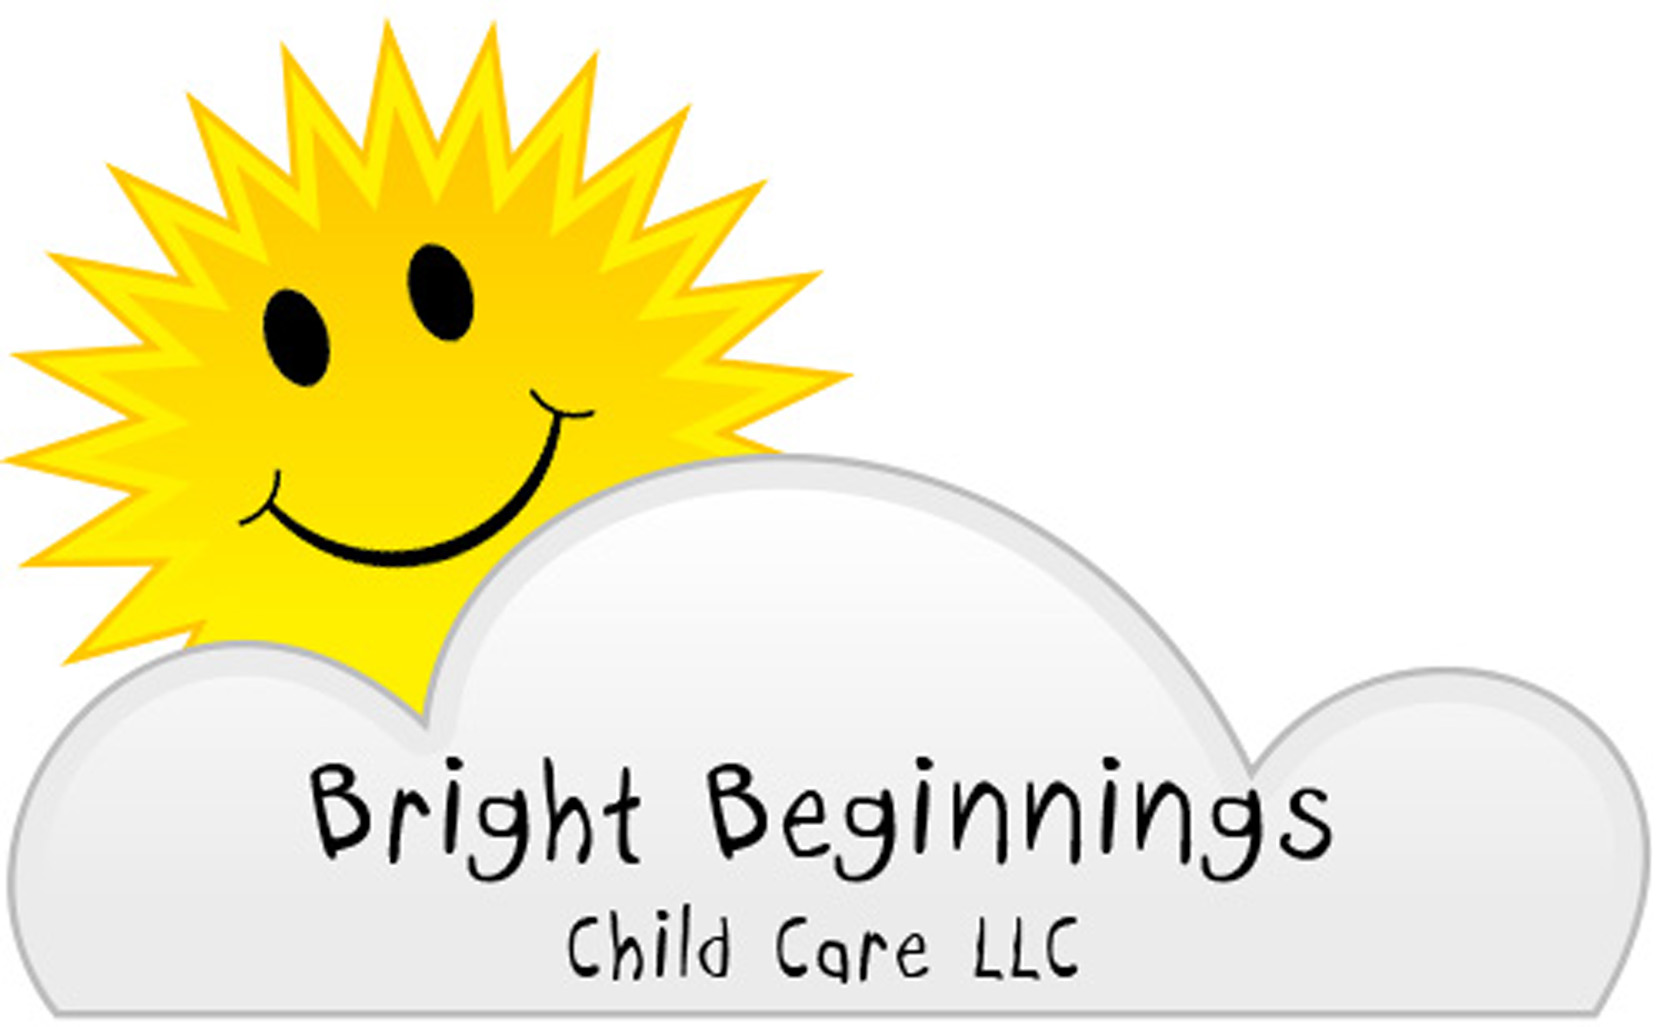 BRIGHT BEGINNINGS CHILD CARE